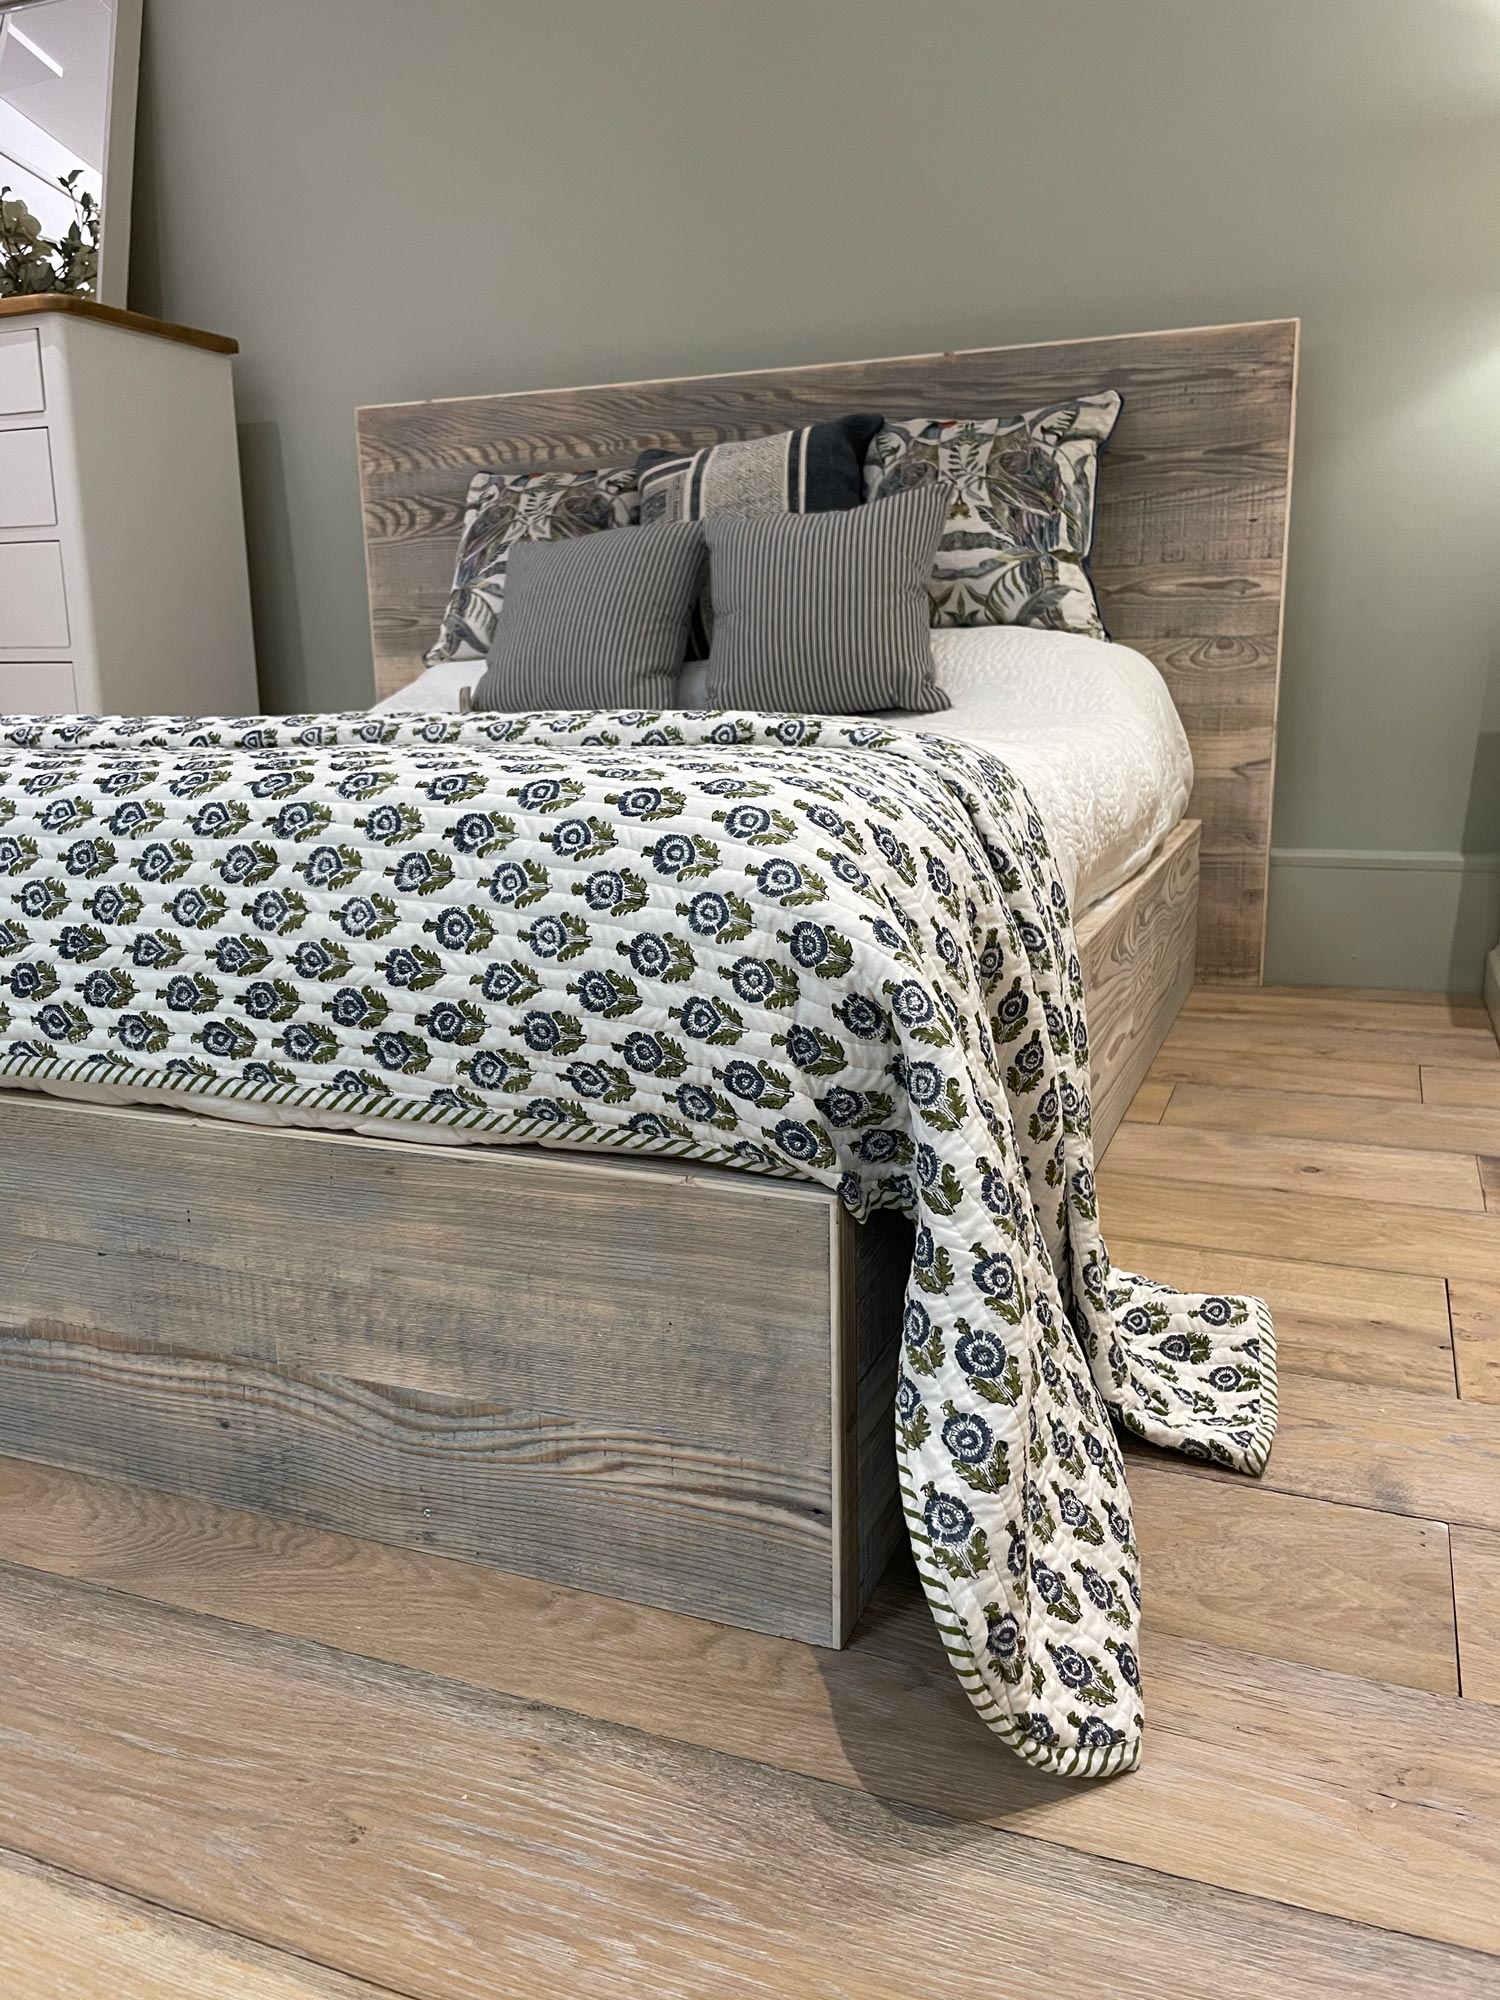 Reclaimed wood king size bed